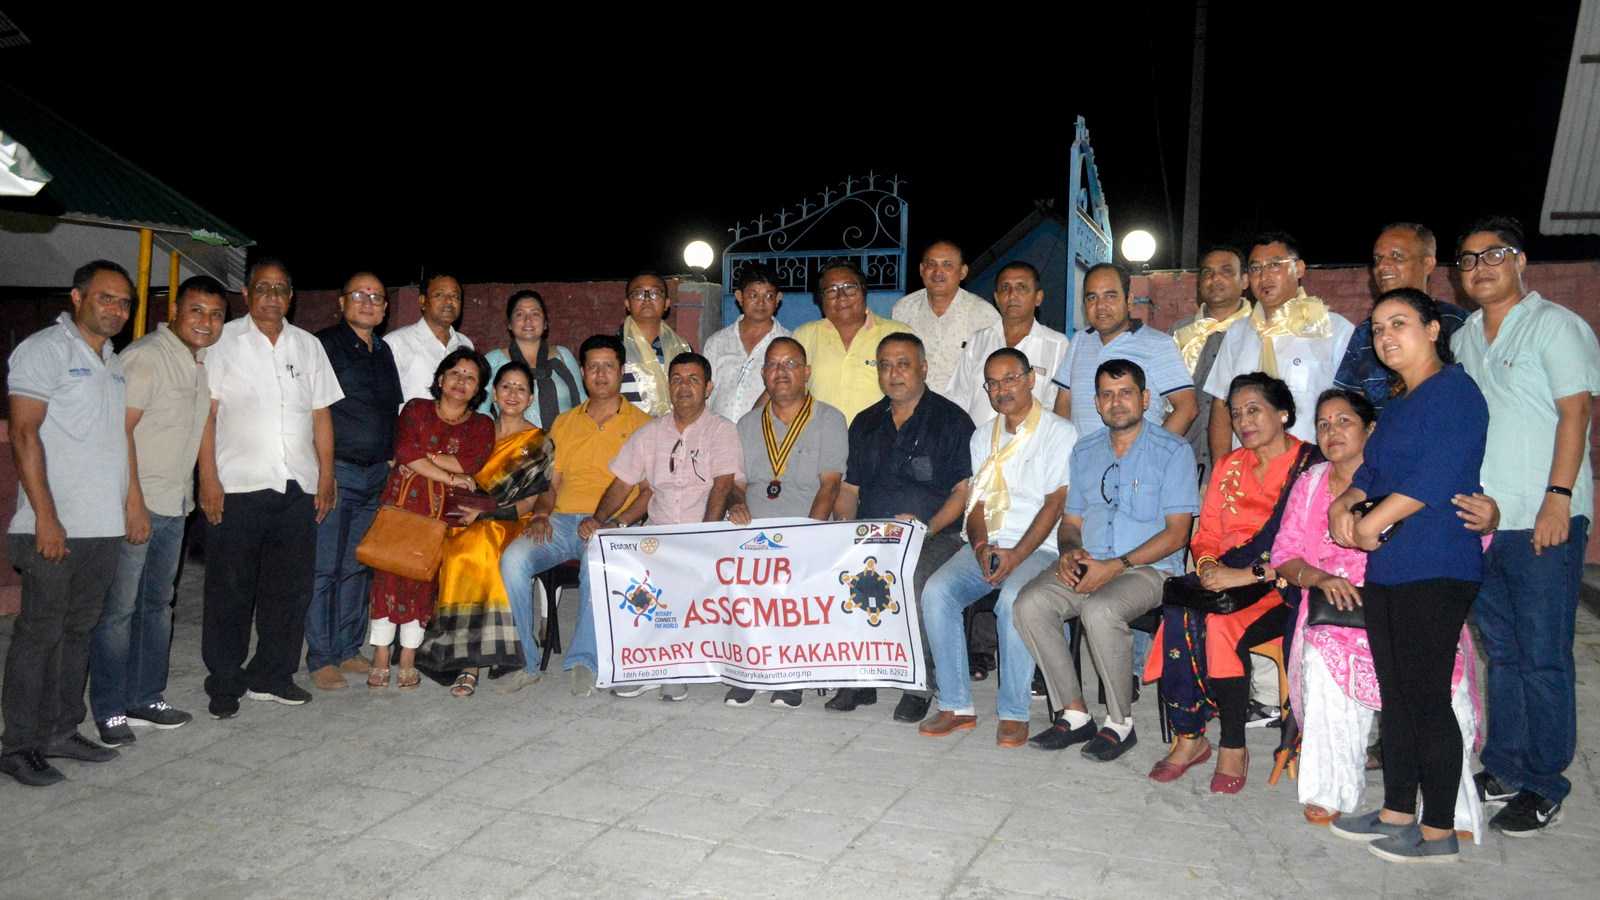 1st-Club-Assembly-2018-19-Rotary-Club-of-Kakarvitta-51